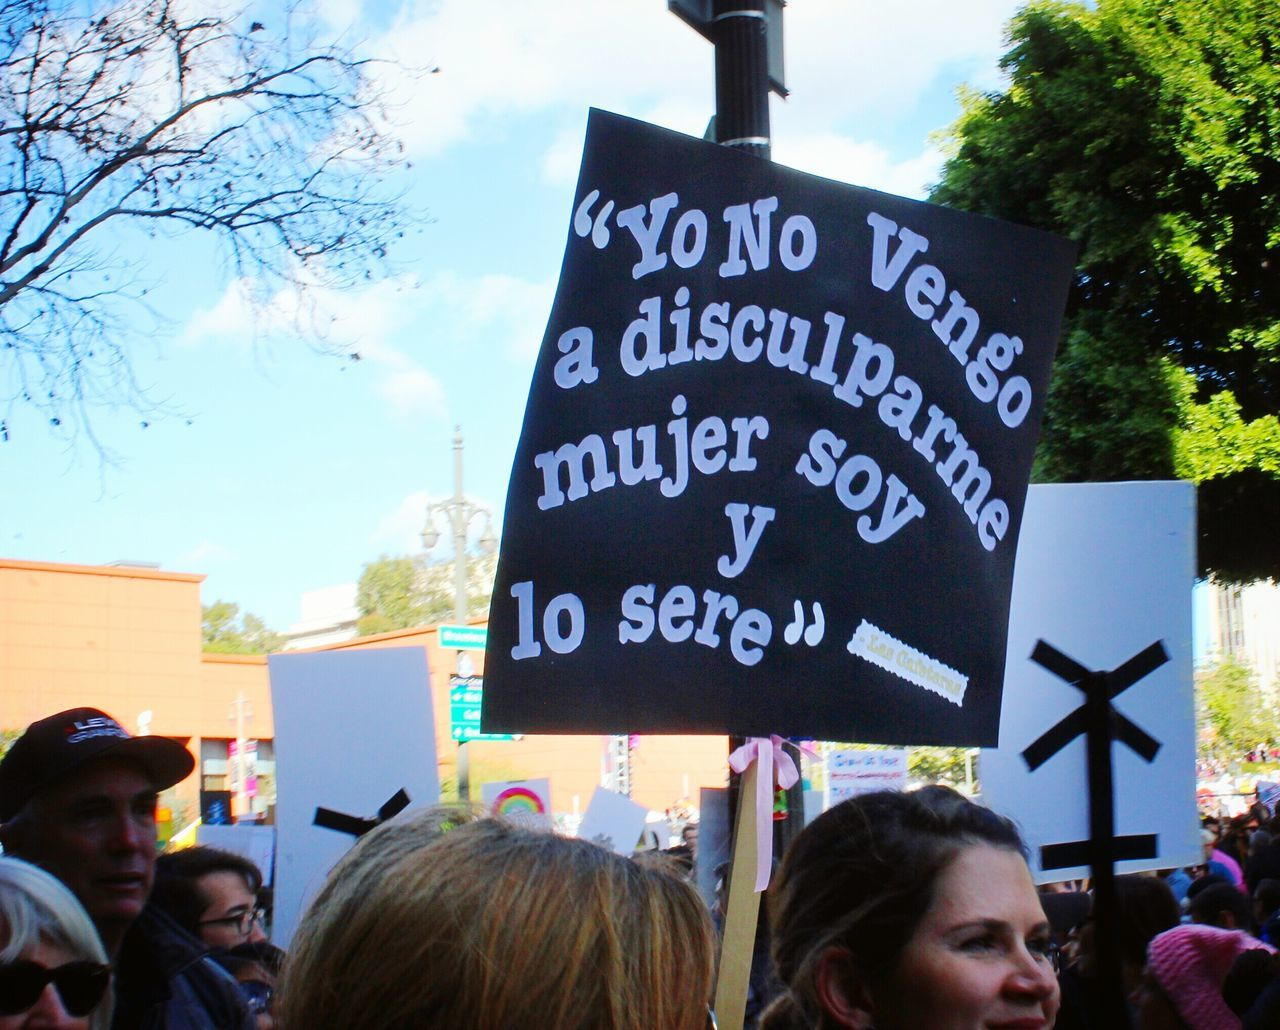 Soy, Mujer!... and what?! Iamwomanhearmeroar Vivalamuxer Notsorry Womensmarch Womensmarchla Losangeles DTLA Mycitymydreams NOTMYPRESIDENT Protest Streetphotography California Stand Up Speakup EyeEmNewHere Unity Empowerment  OneLove People